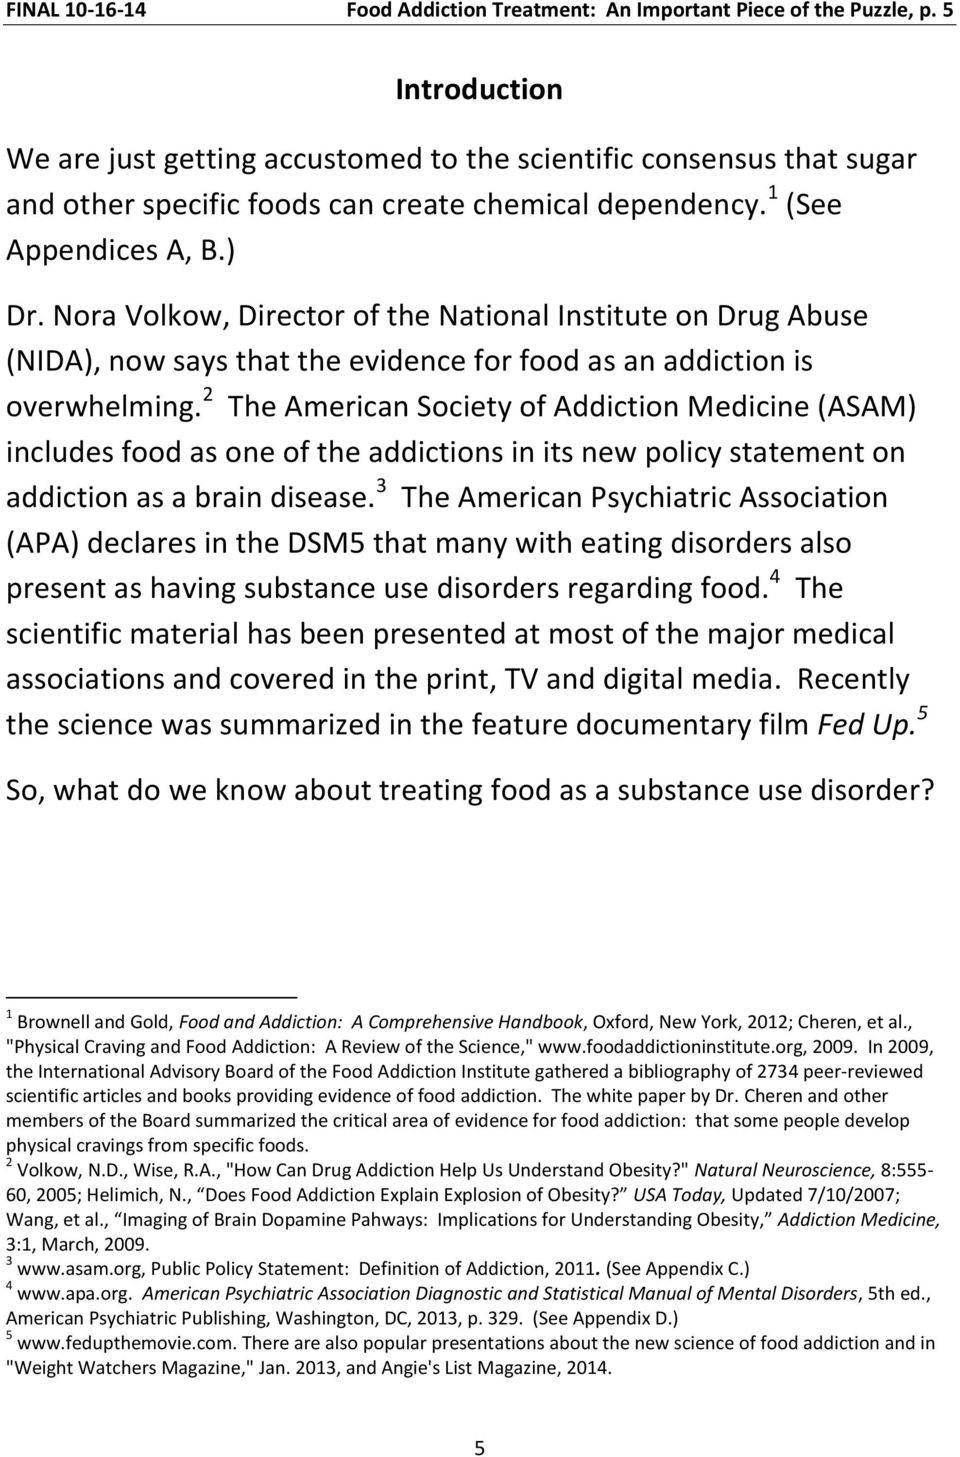 Nora Volkow, Director of the National Institute on Drug Abuse (NIDA), now says that the evidence for food as an addiction is overwhelming.